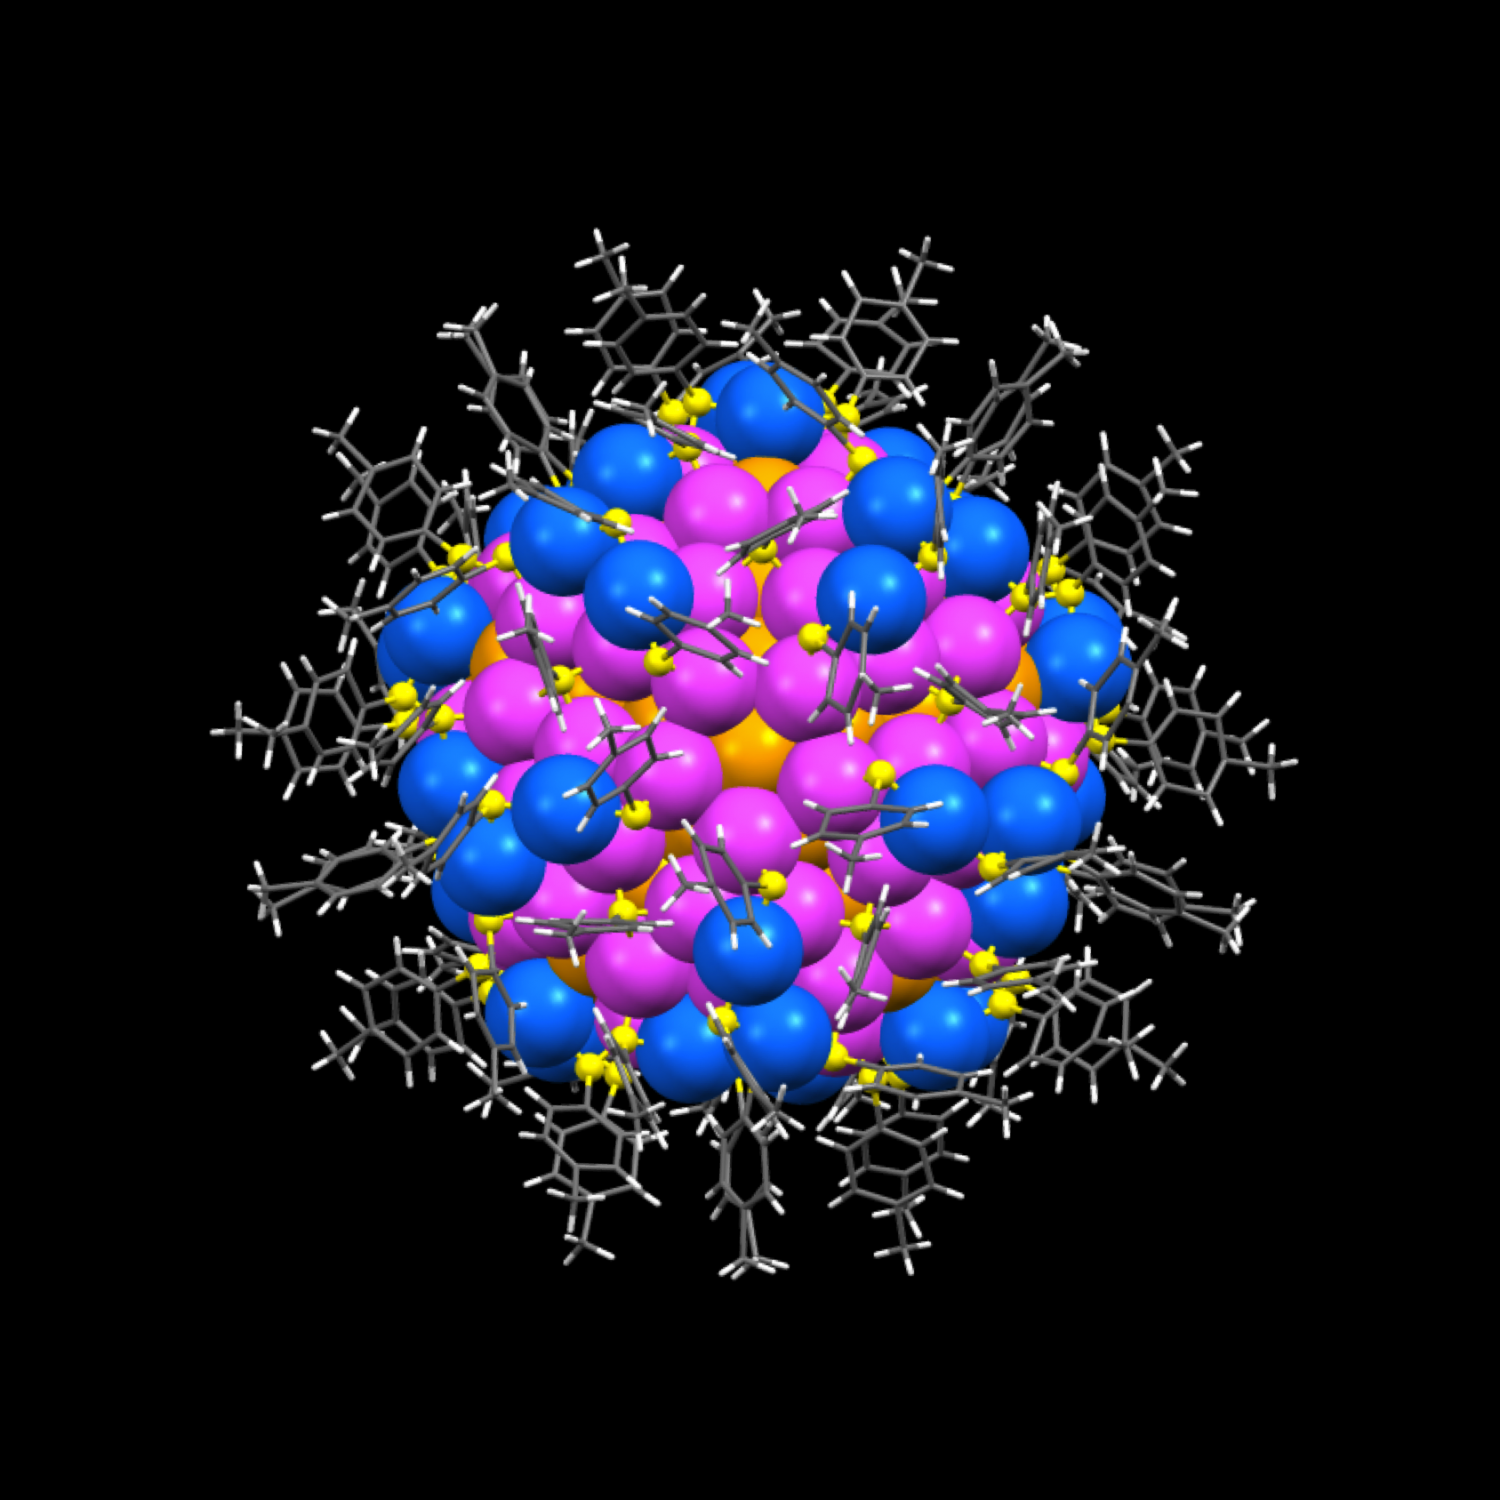 Synthetic nanoparticles achieve the complexity of protein molecules